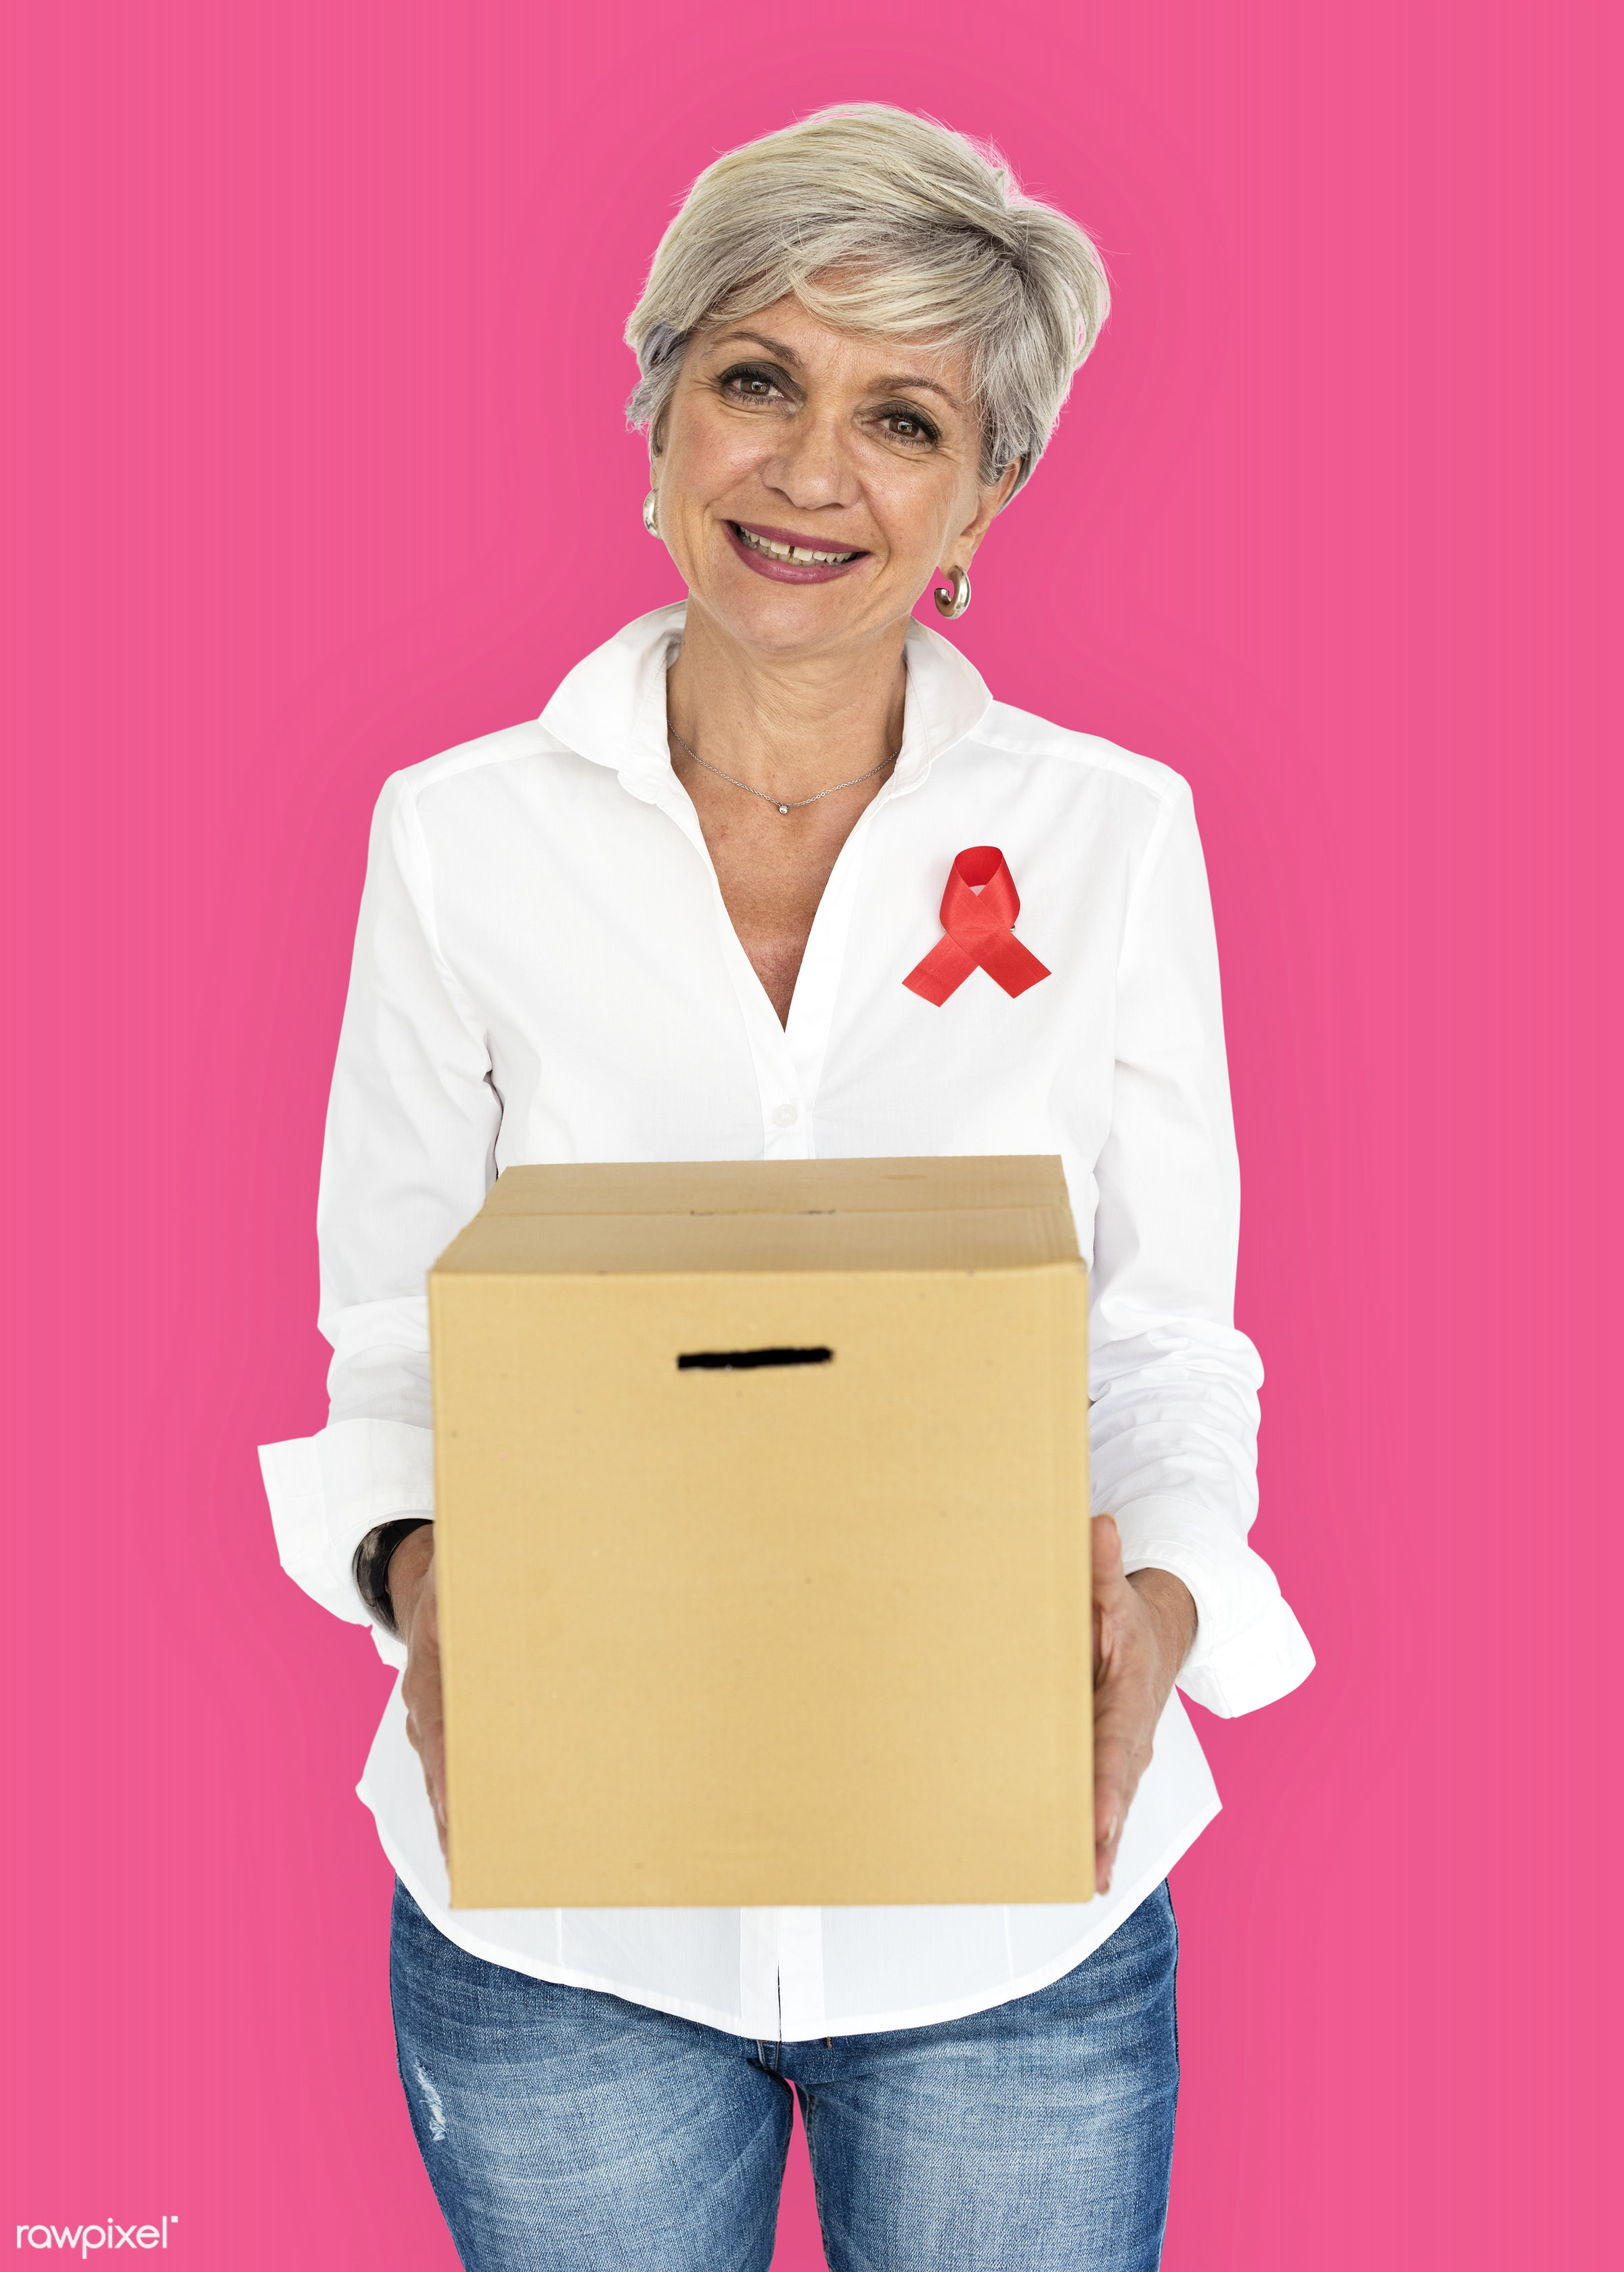 studio, expression, person, holding, red ribbon, charity, people, hiv, solo, woman, ribbon, pink, cheerful, smiling,...